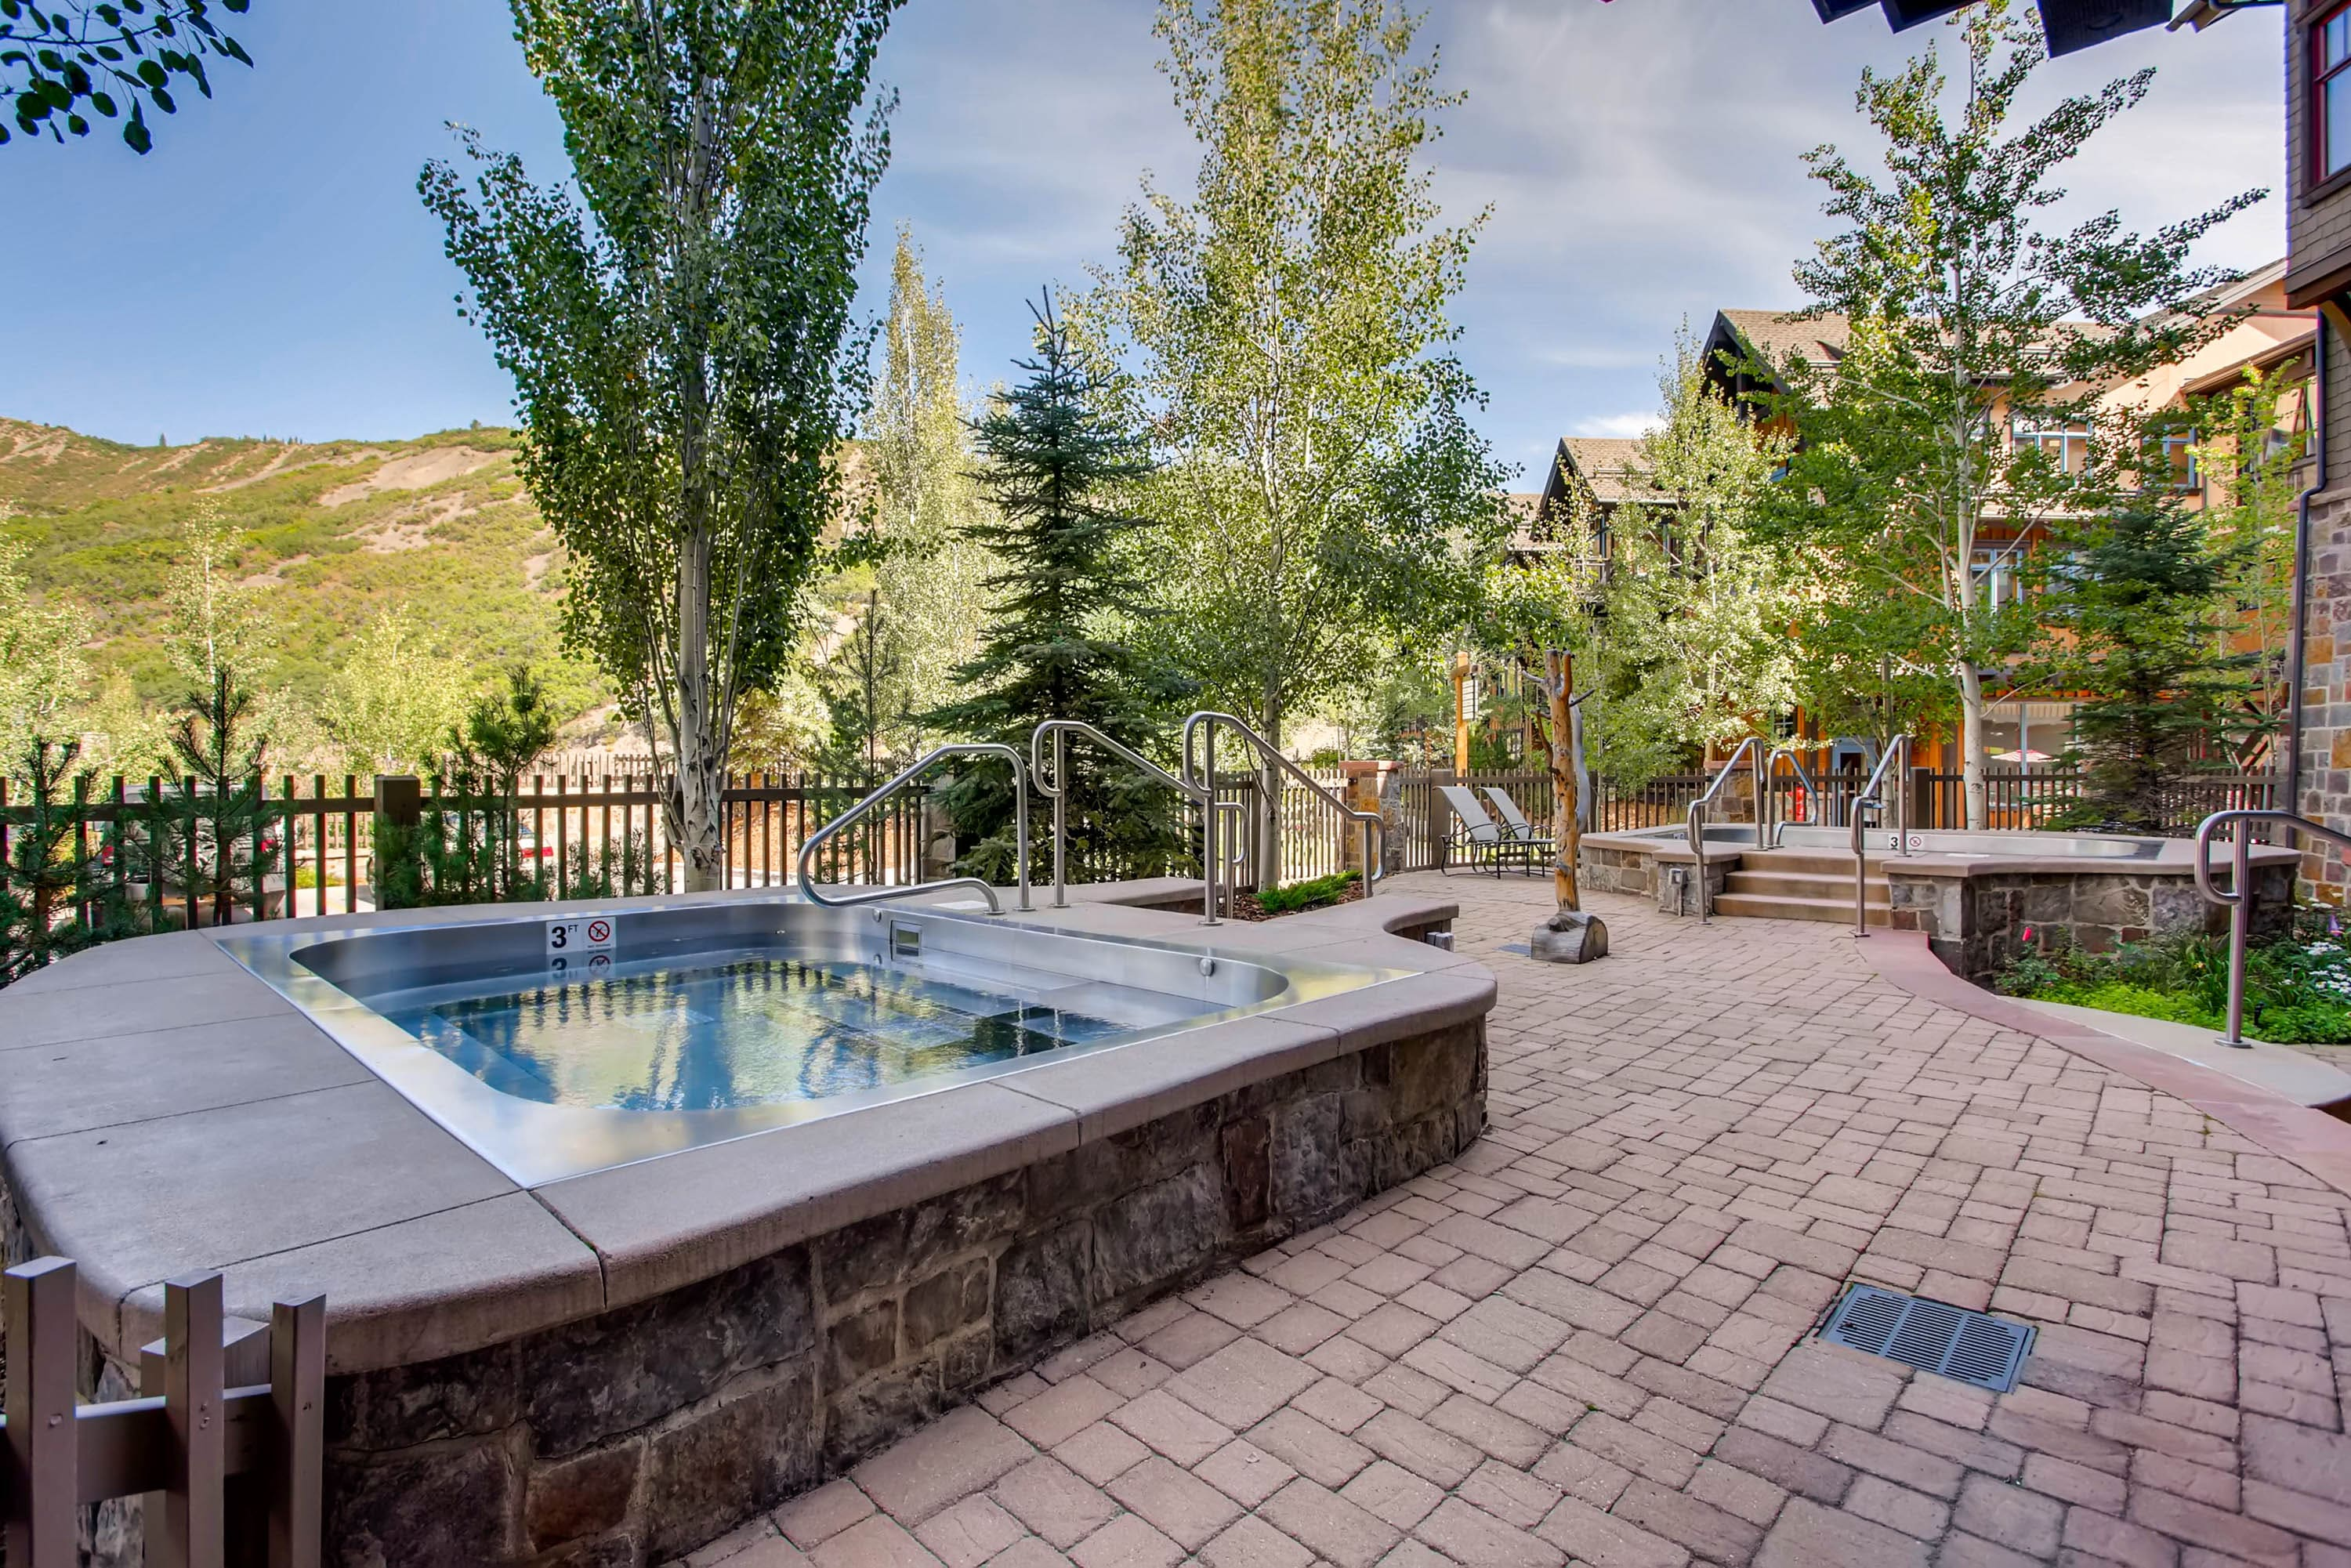 Luxury 2 bedroom vacation rental in the heart of Snowmass Base Village